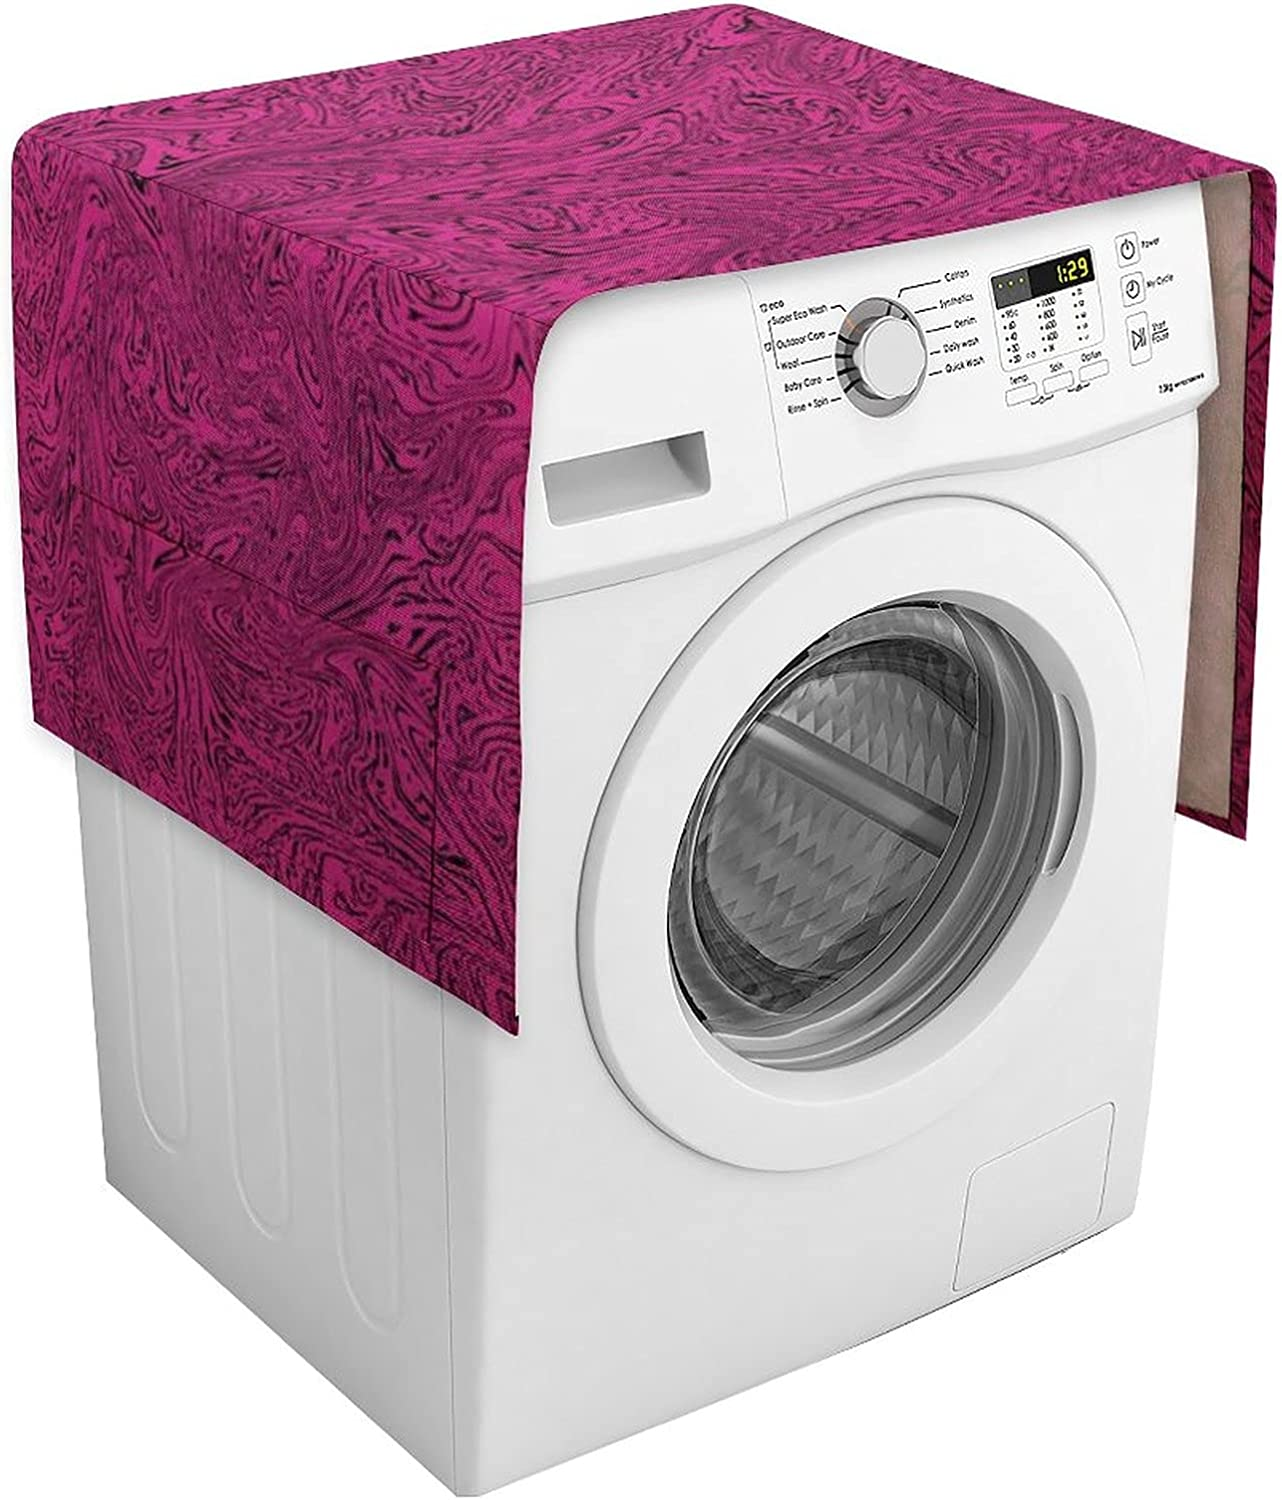 Multi-Purpose Washing Machine Covers Protector Appliance Special Campaign Washer New product type